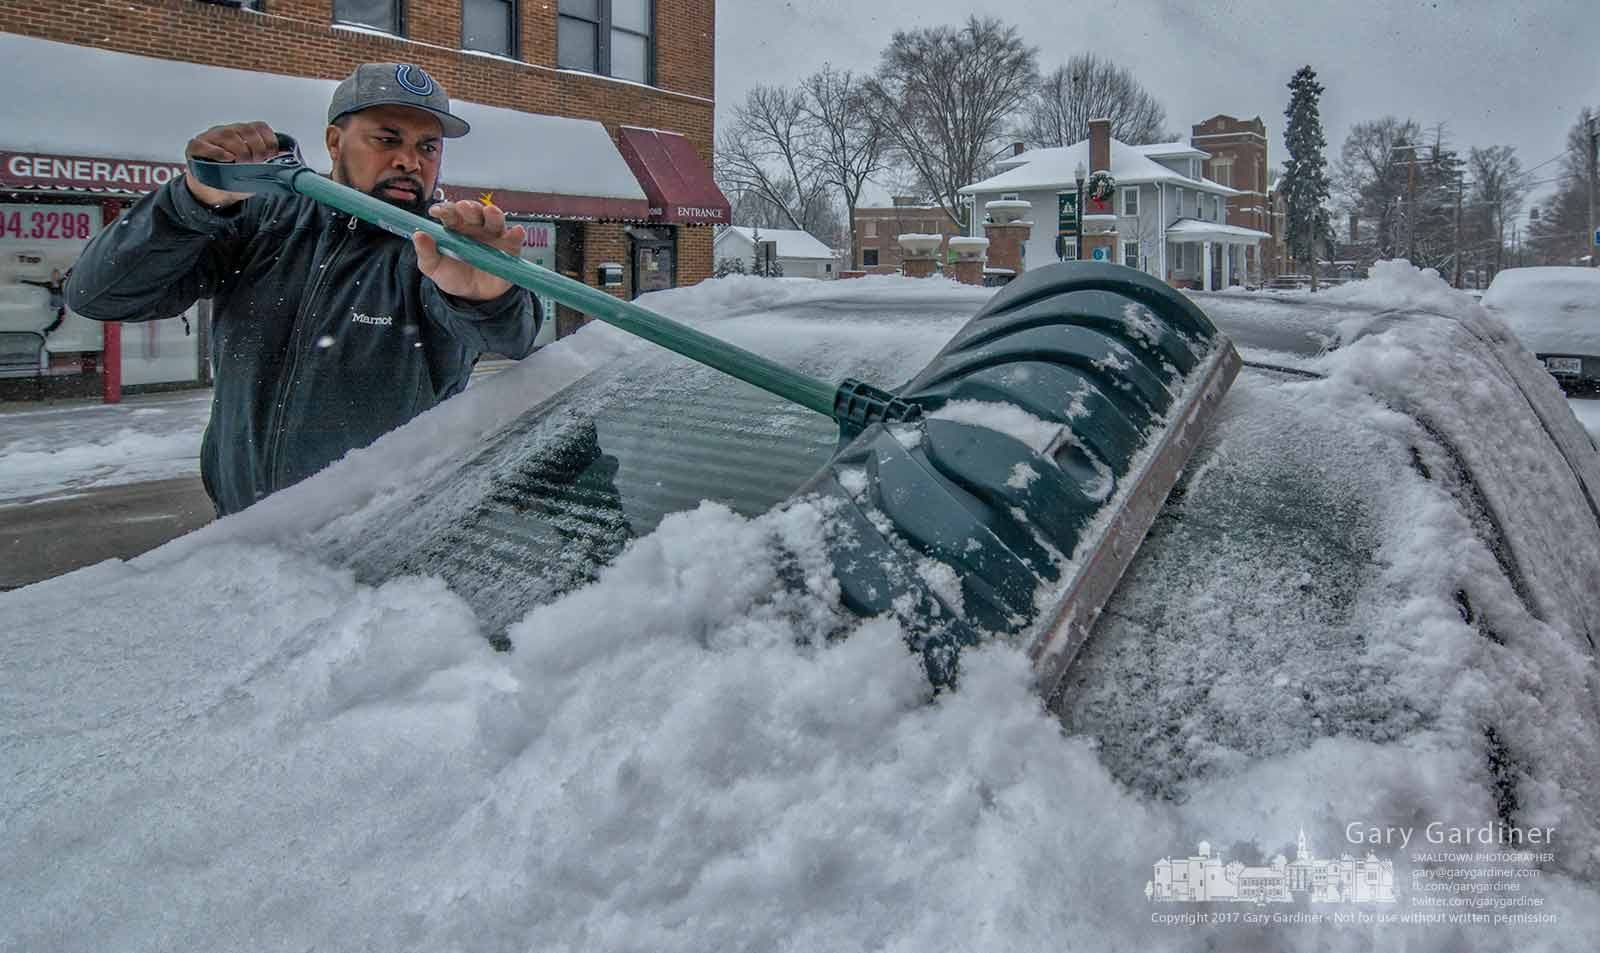 A driver uses a snow shovel to scrape the overnight snow from his car before heading on his day's trips from Uptown Westerville. My Final Photo for Dec. 30, 2017.